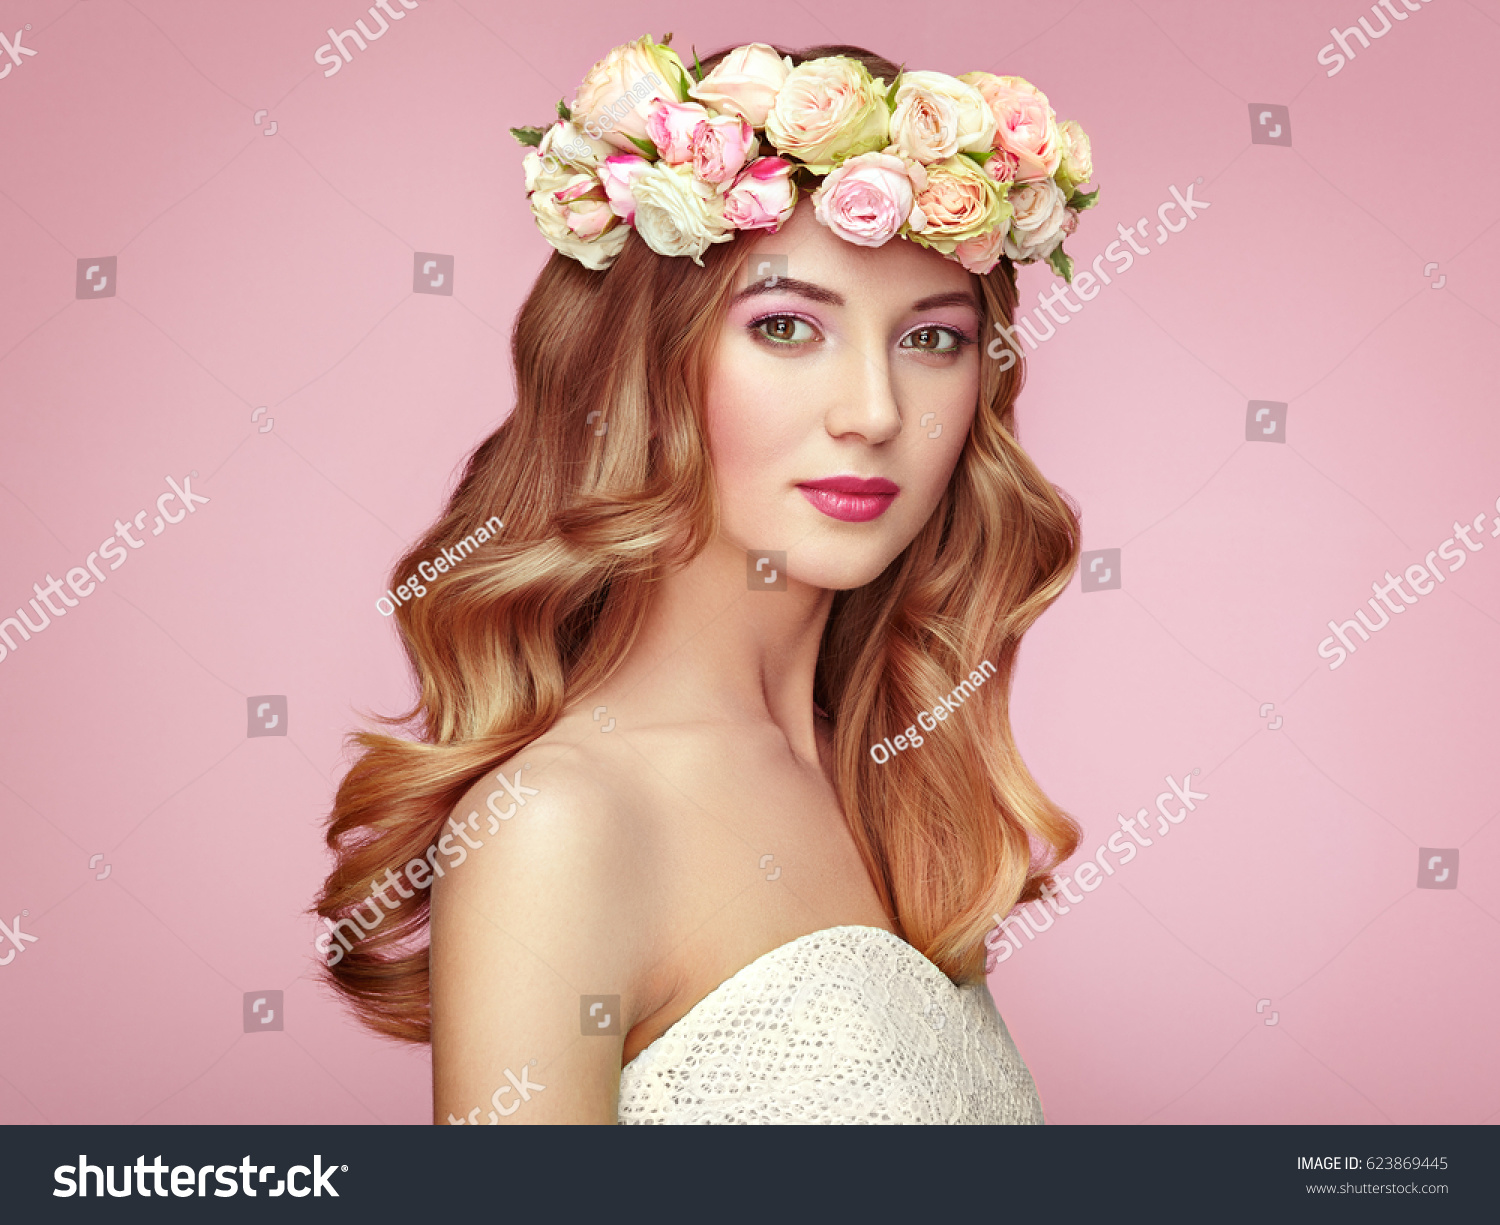 Beautiful blonde woman flower wreath on stock photo 623869445 beautiful blonde woman with flower wreath on her head beauty girl with flowers hairstyle dhlflorist Gallery